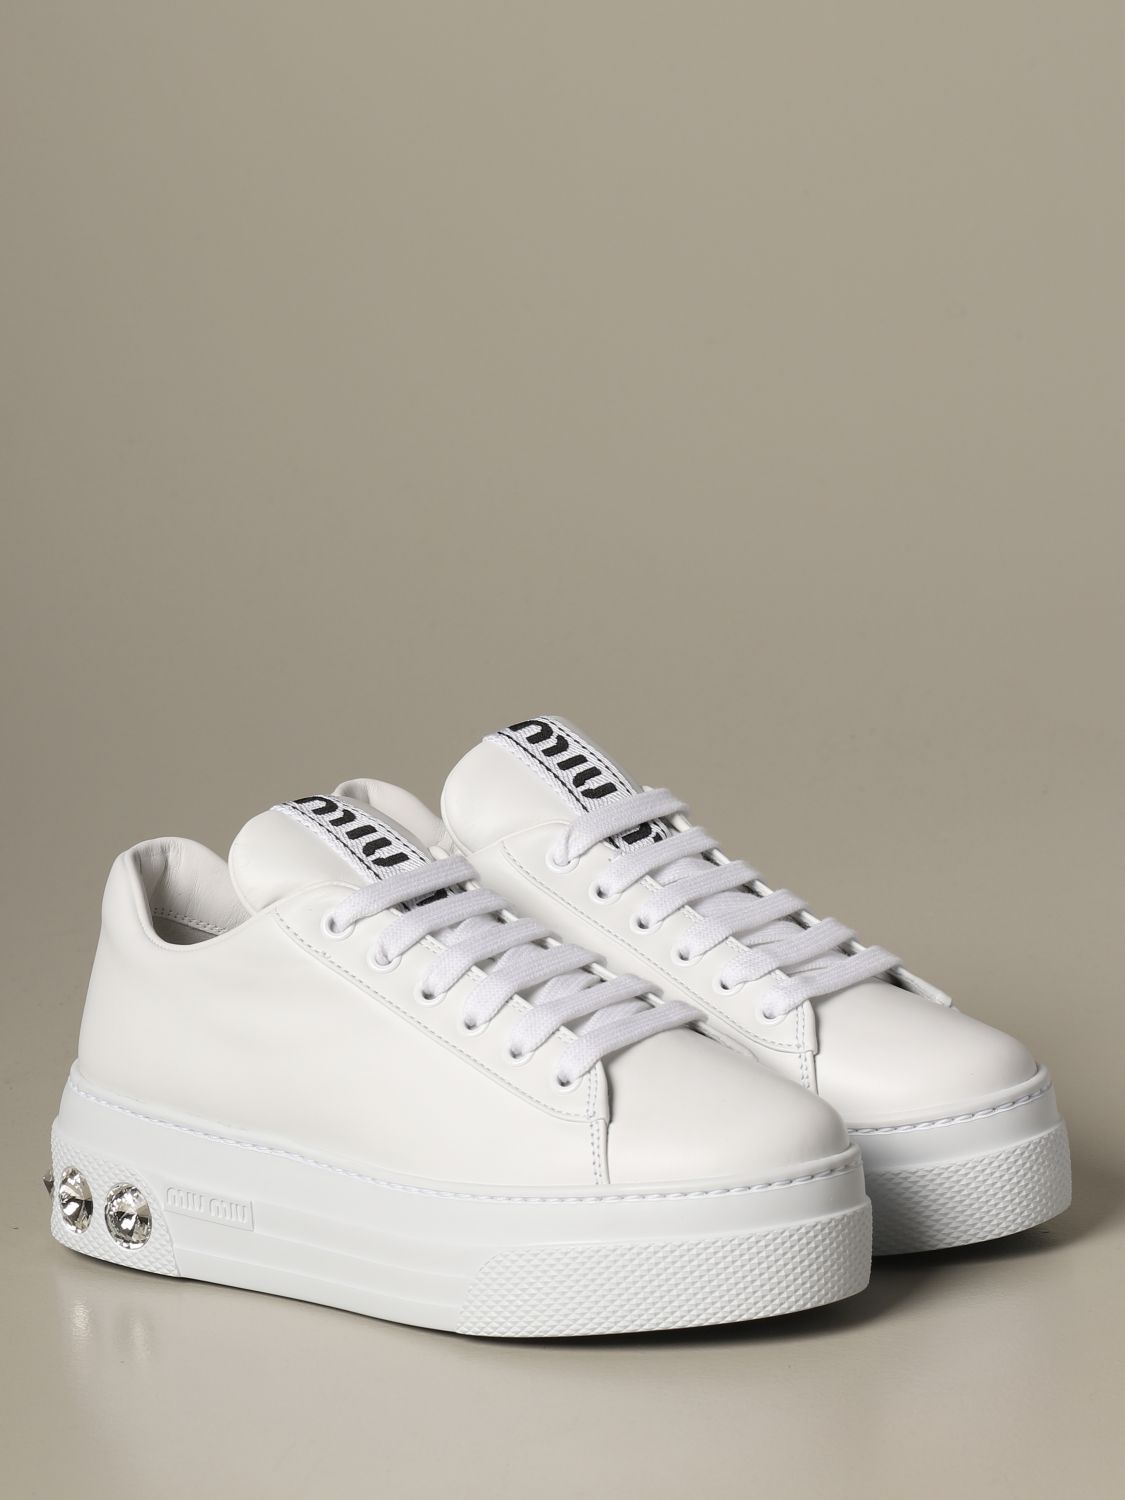 Sneakers pelle suola strass bianco 2